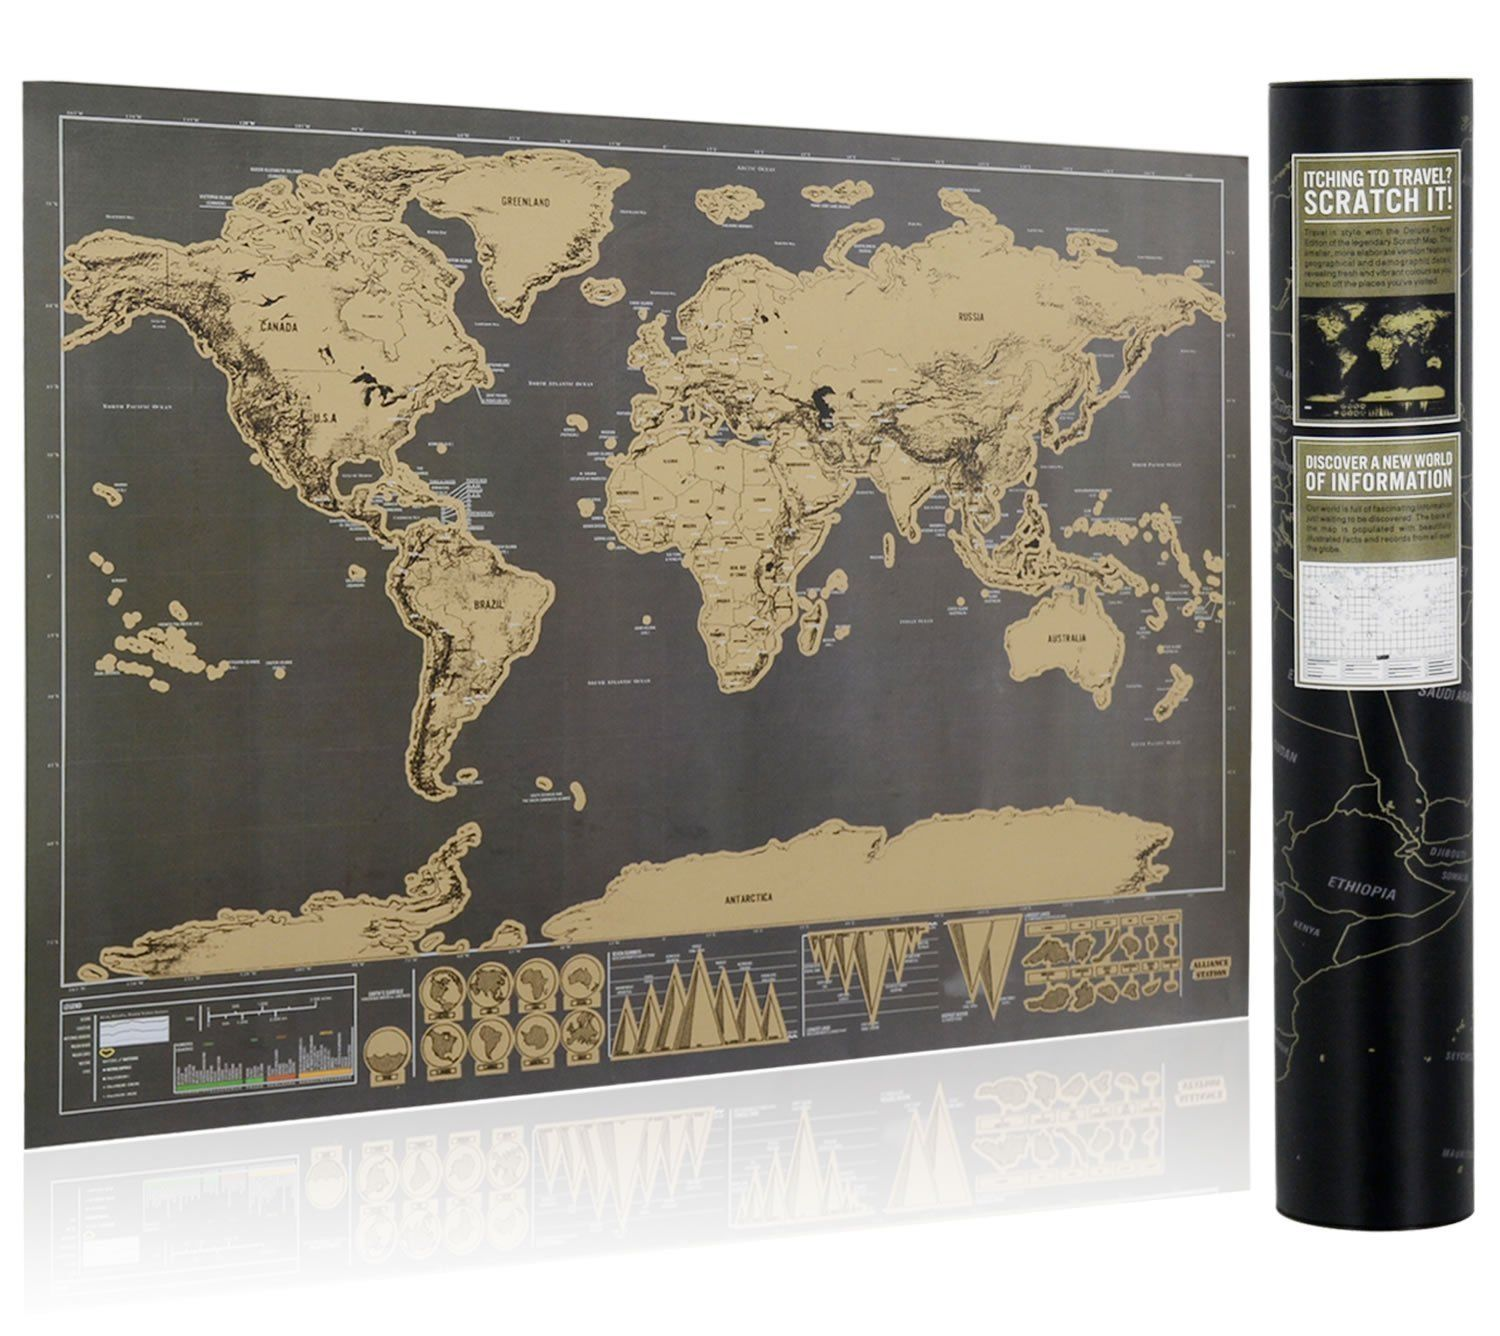 LARGE SCRATCH OFF WORLD MAP POSTER PERSONALIZED TRAVEL VACATION LOG GIFT PAINT